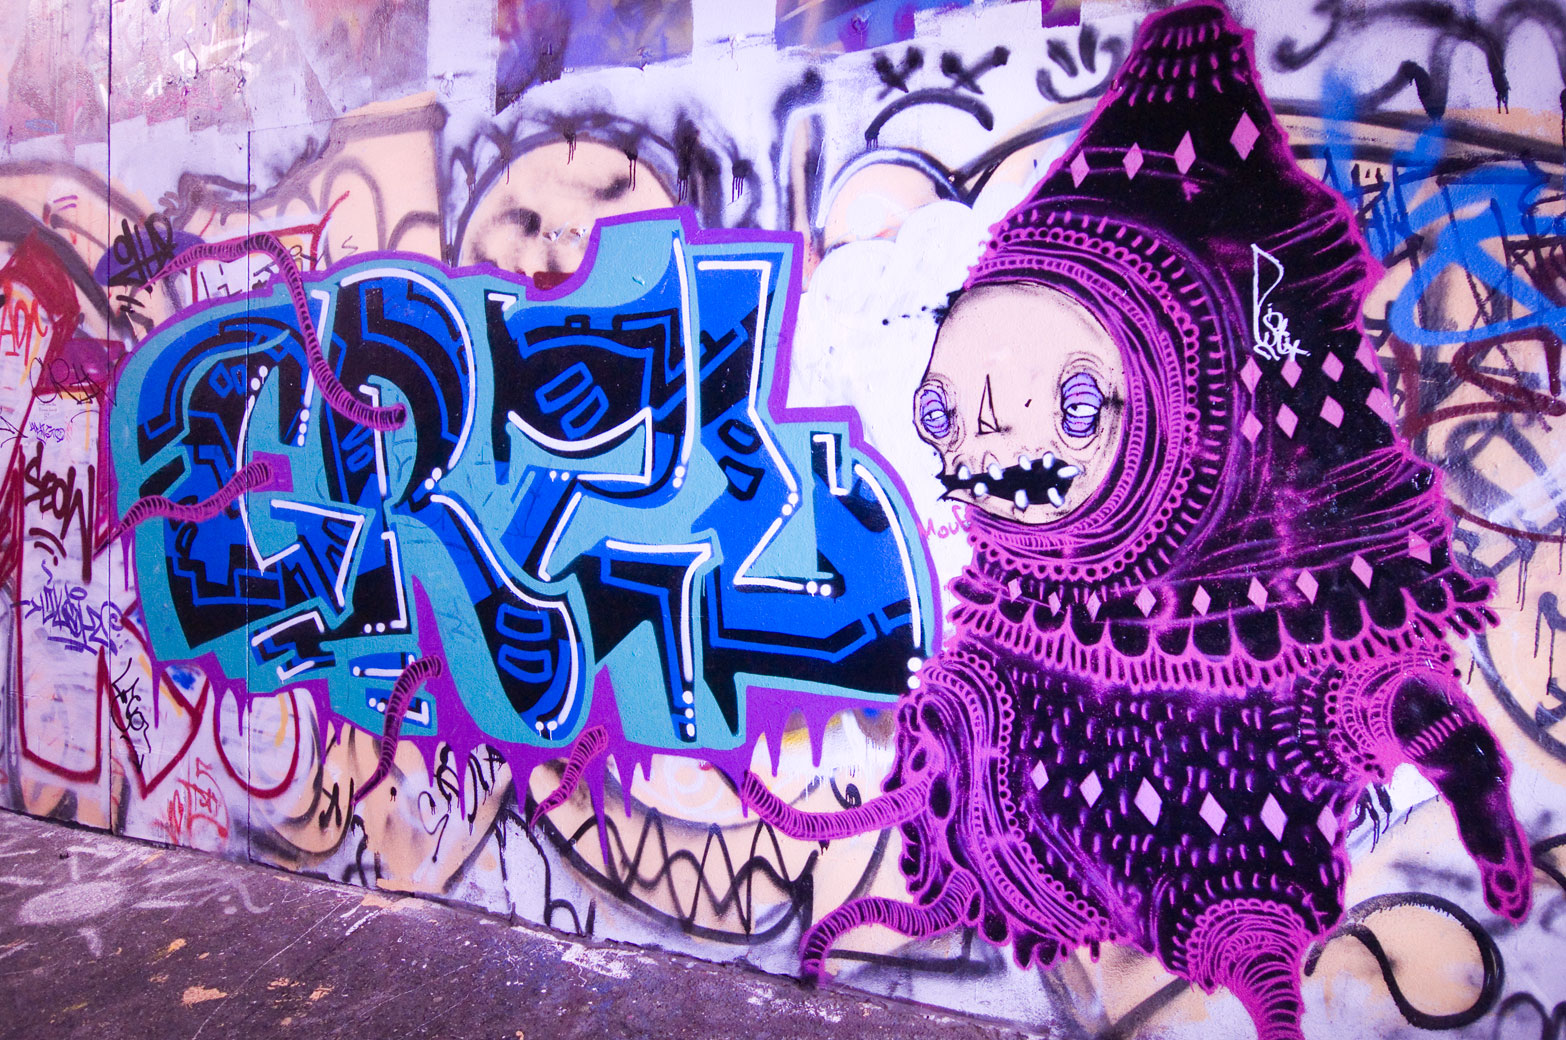 all-those-shapes_-_mouf_-_pink-purple-graff-tentacles_-_union